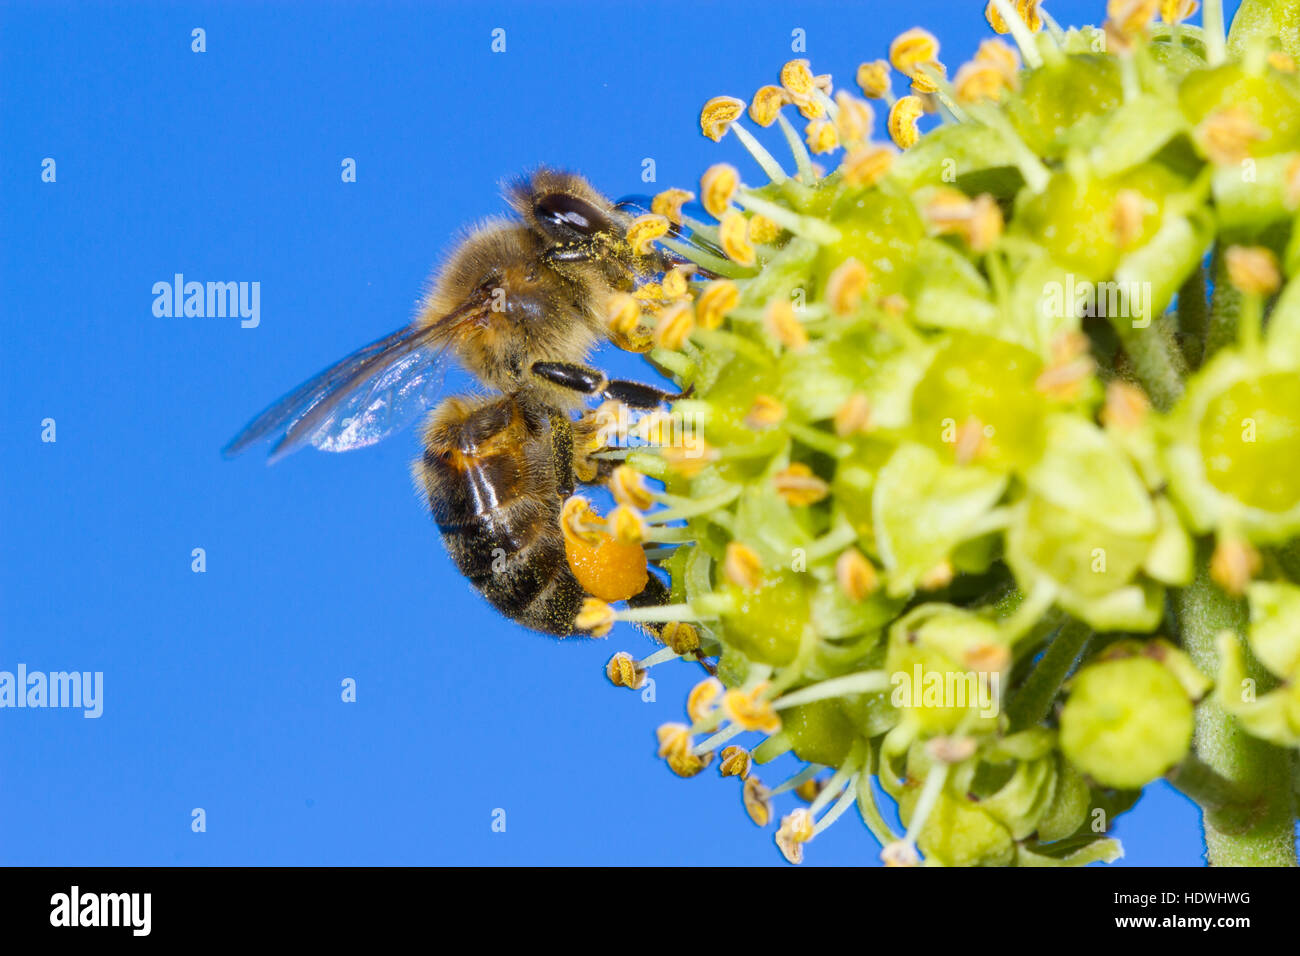 Ivy Flowers Bee Stock Photos Ivy Flowers Bee Stock Images Alamy